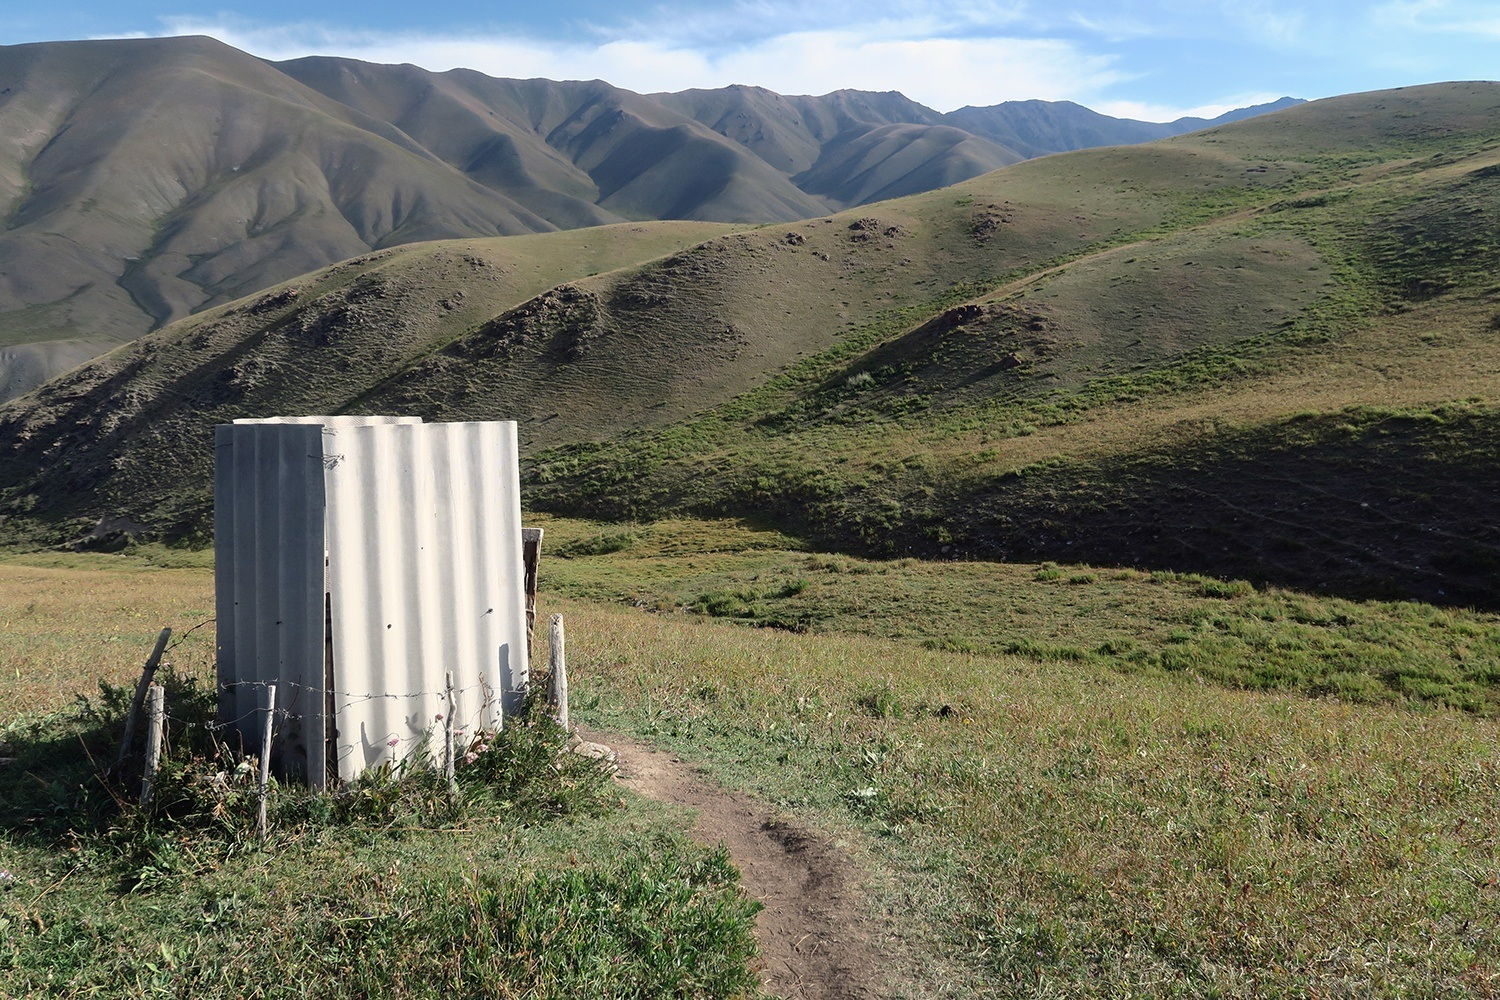 Backpacking Kyrgyzstan may require the use of squat toilets